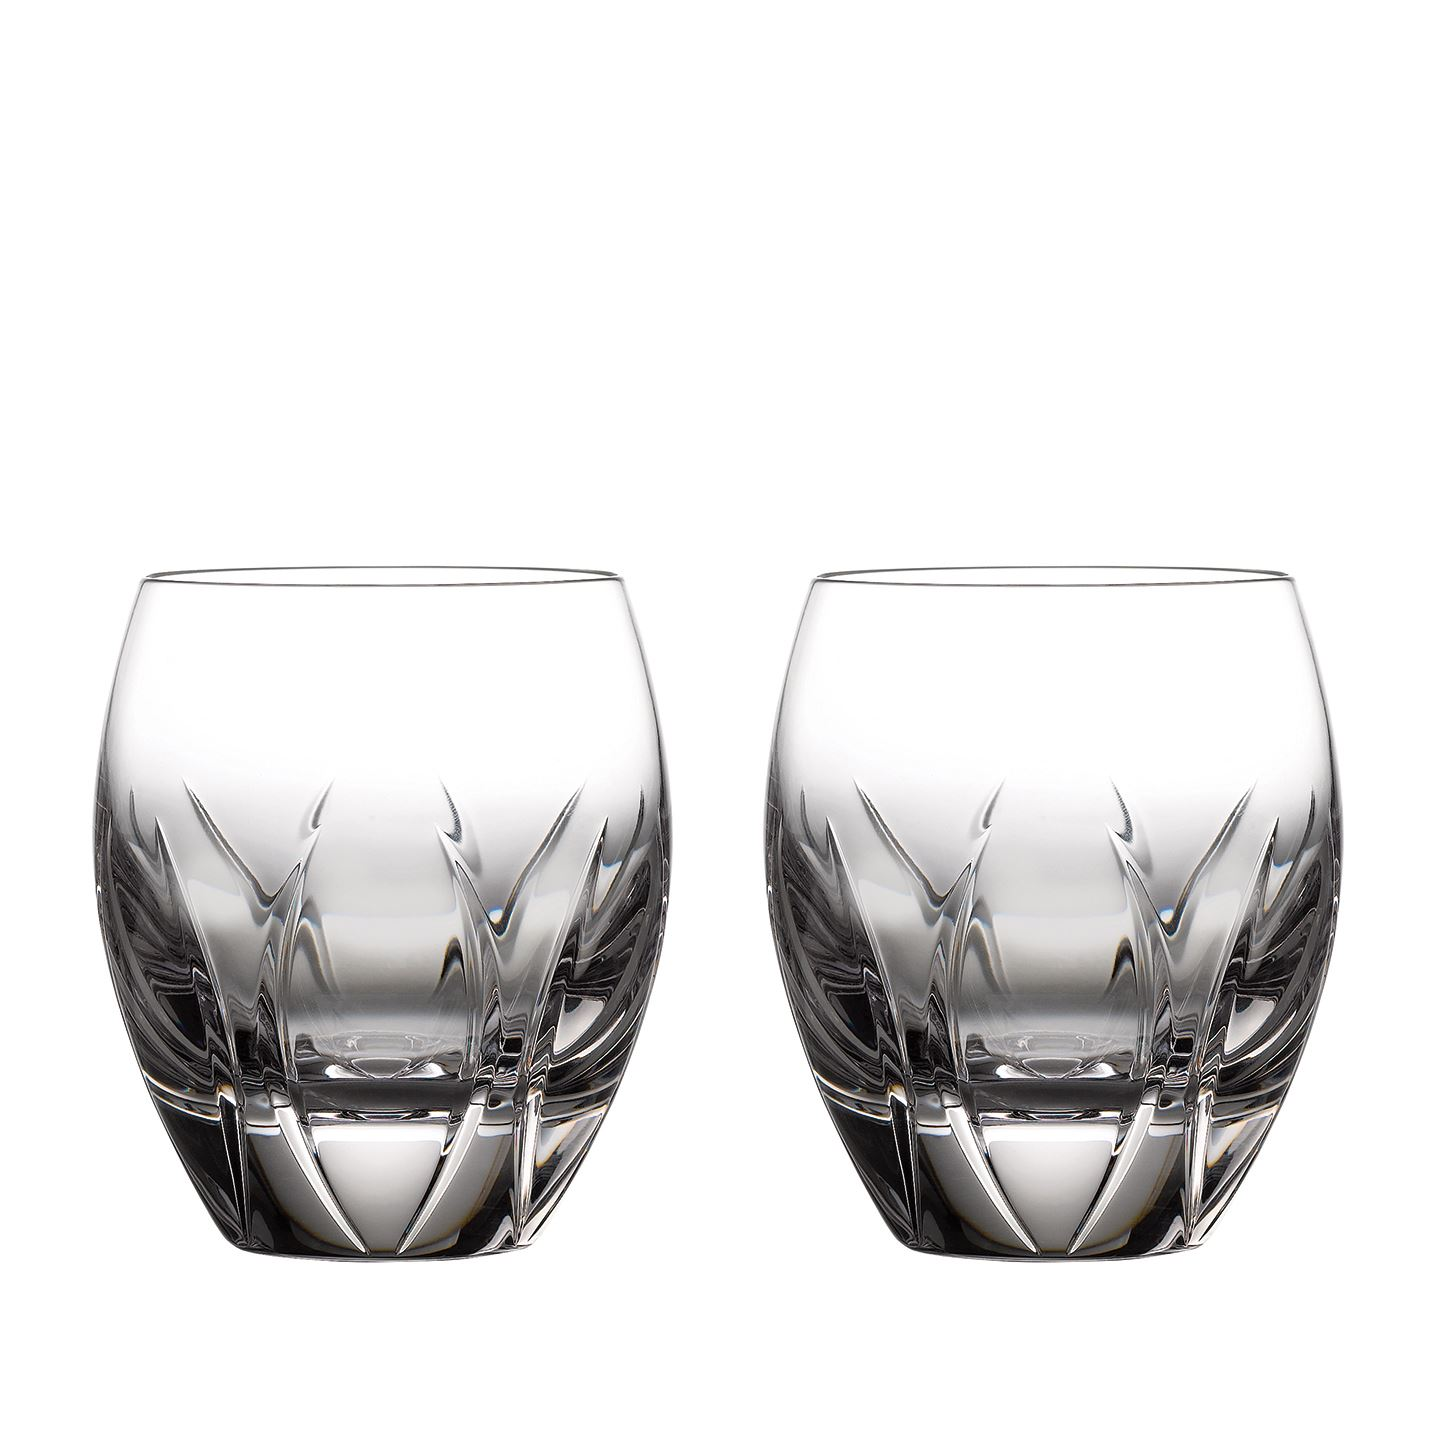 Waterford Tonn Whiskey Glass | Set of 2 | Lead Crystal